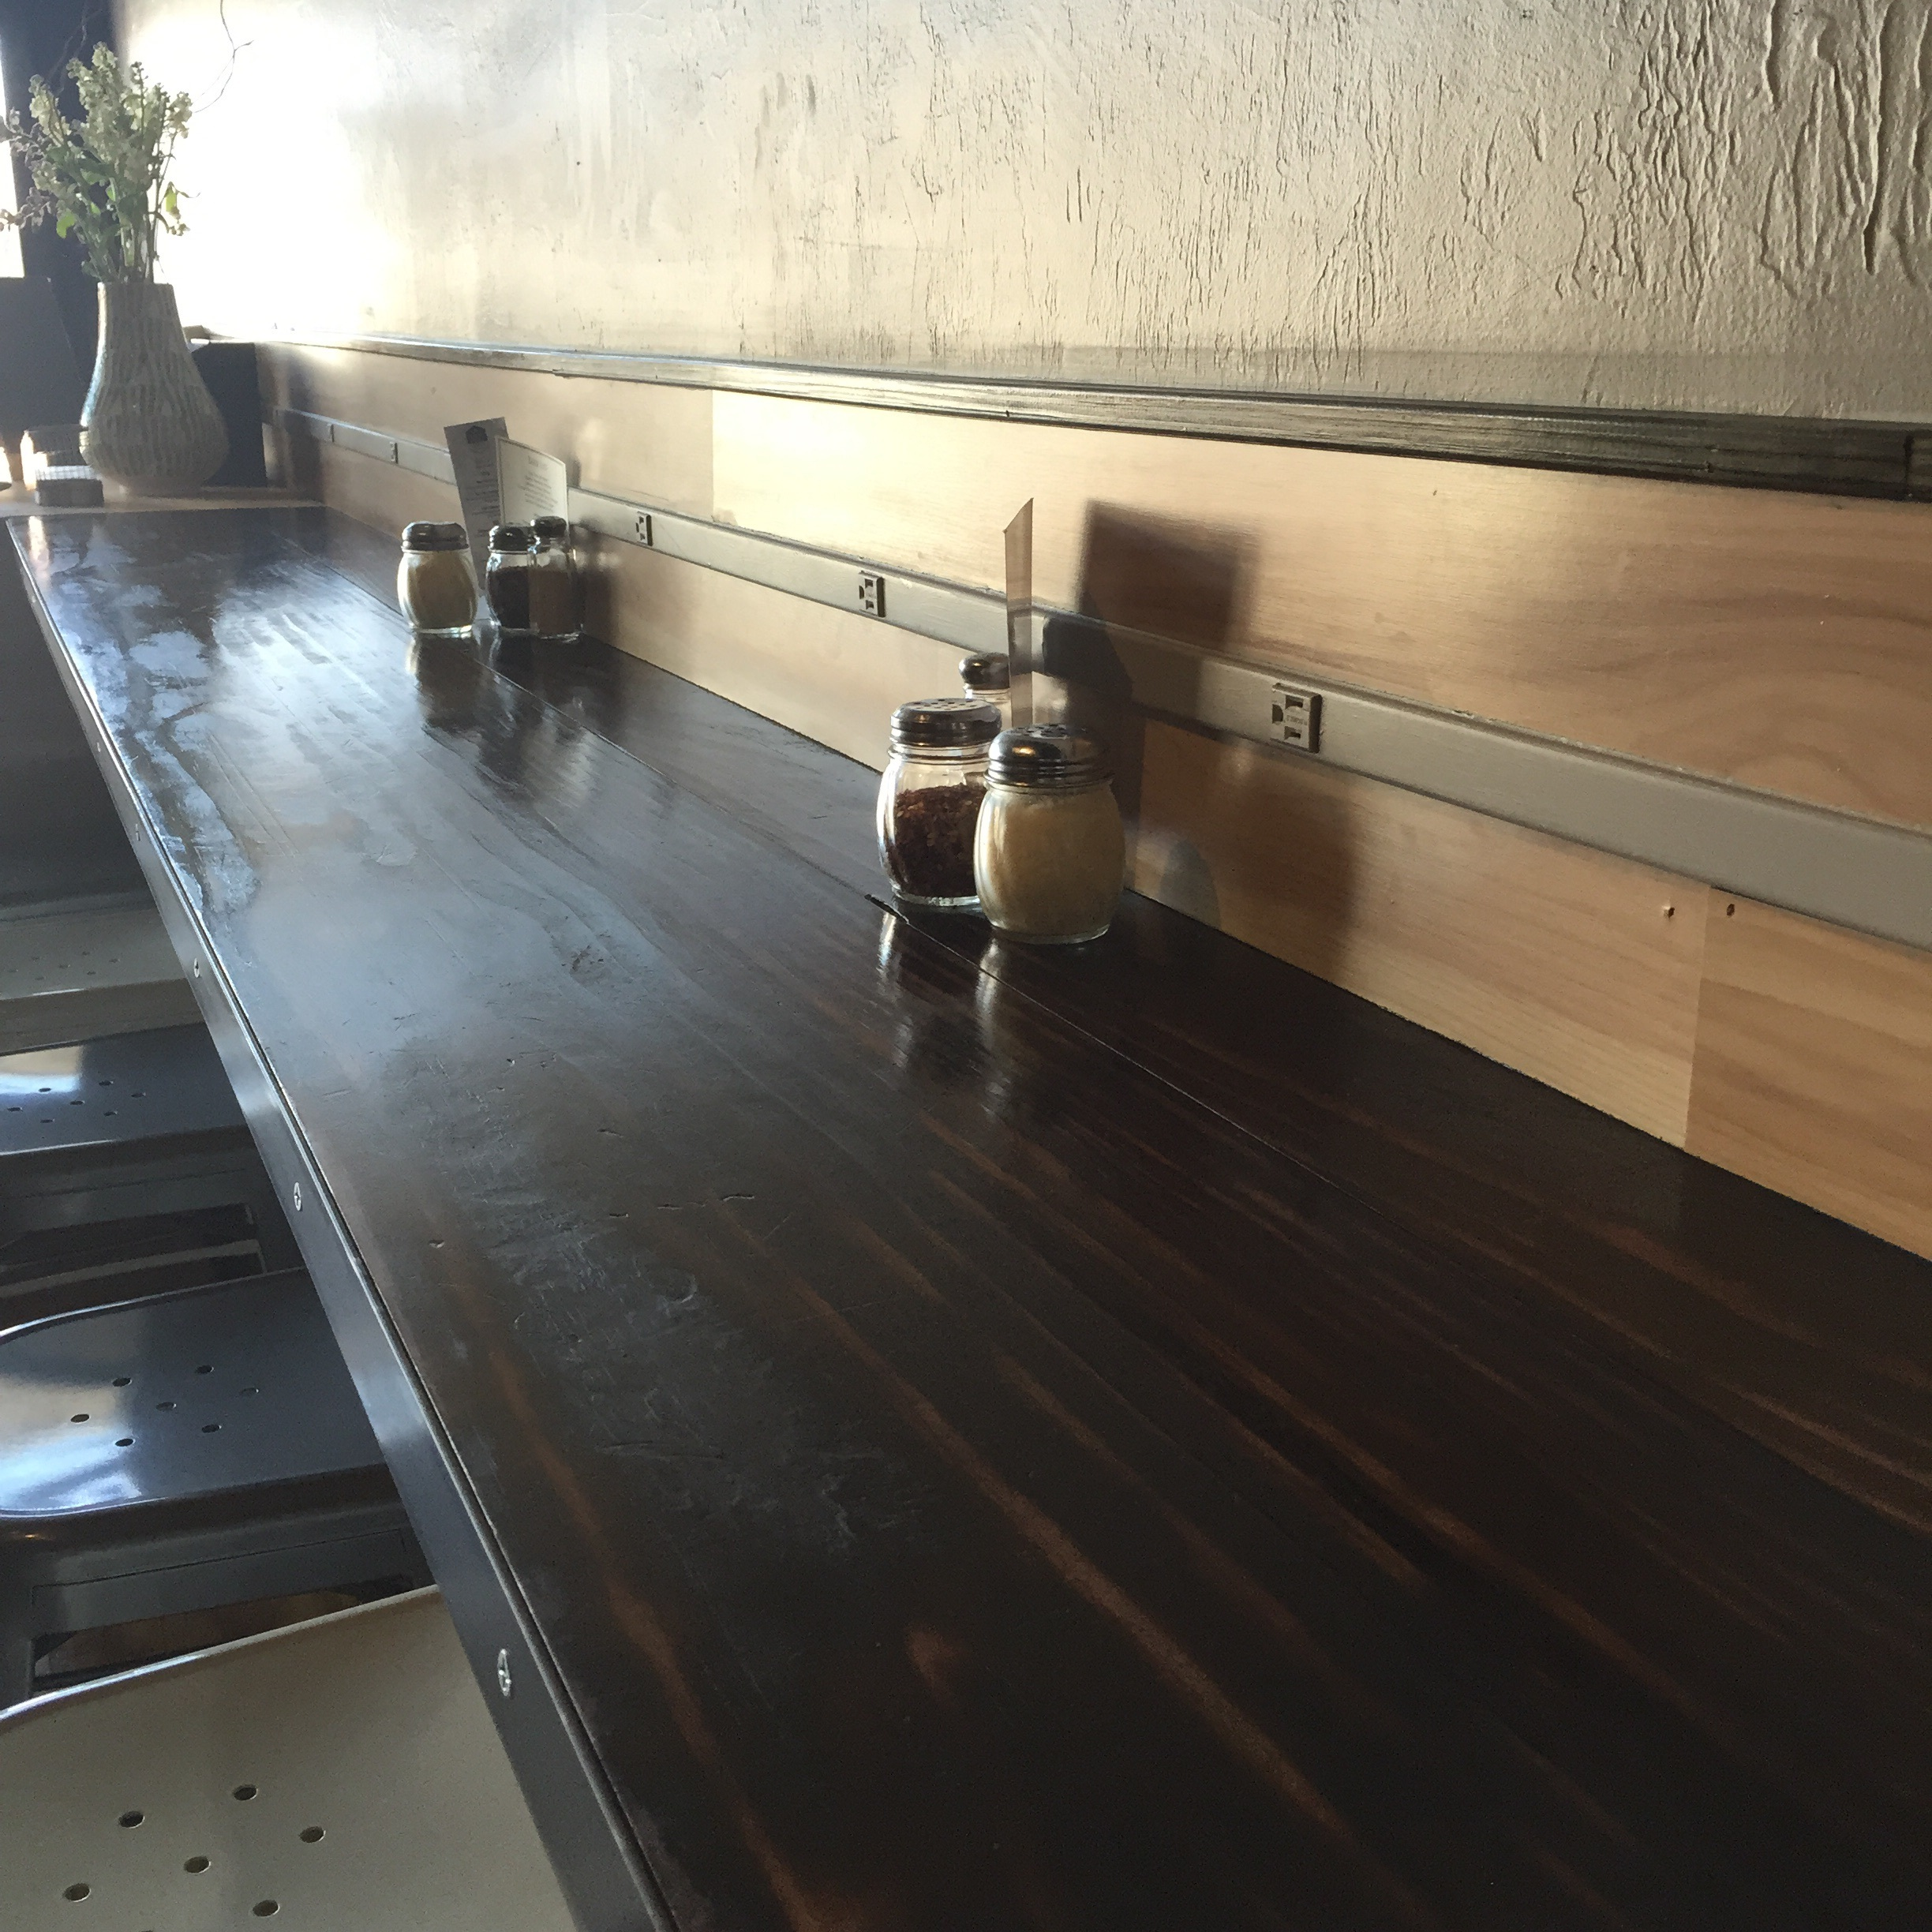 """The """"smart bar"""" was stained in a deeper mahogany tone. Scorched areas are visible with the reflections from the light."""